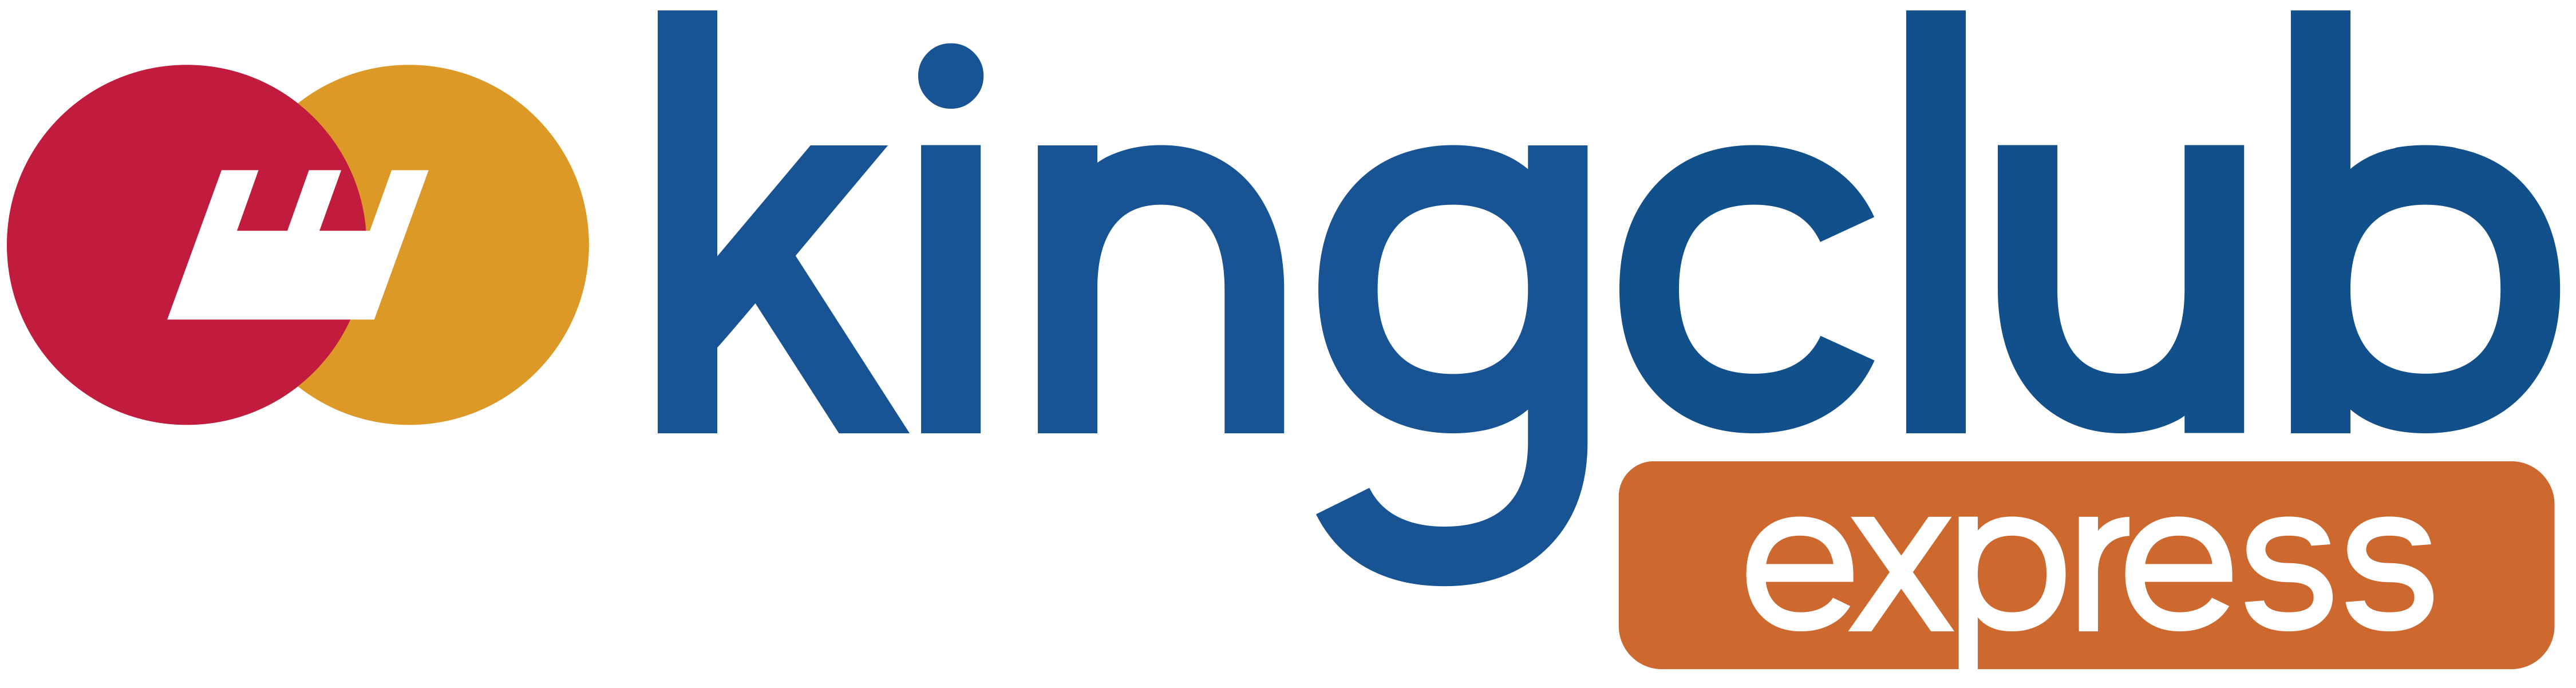 Kingclub Express, a Doral Chamber of Commerce member.